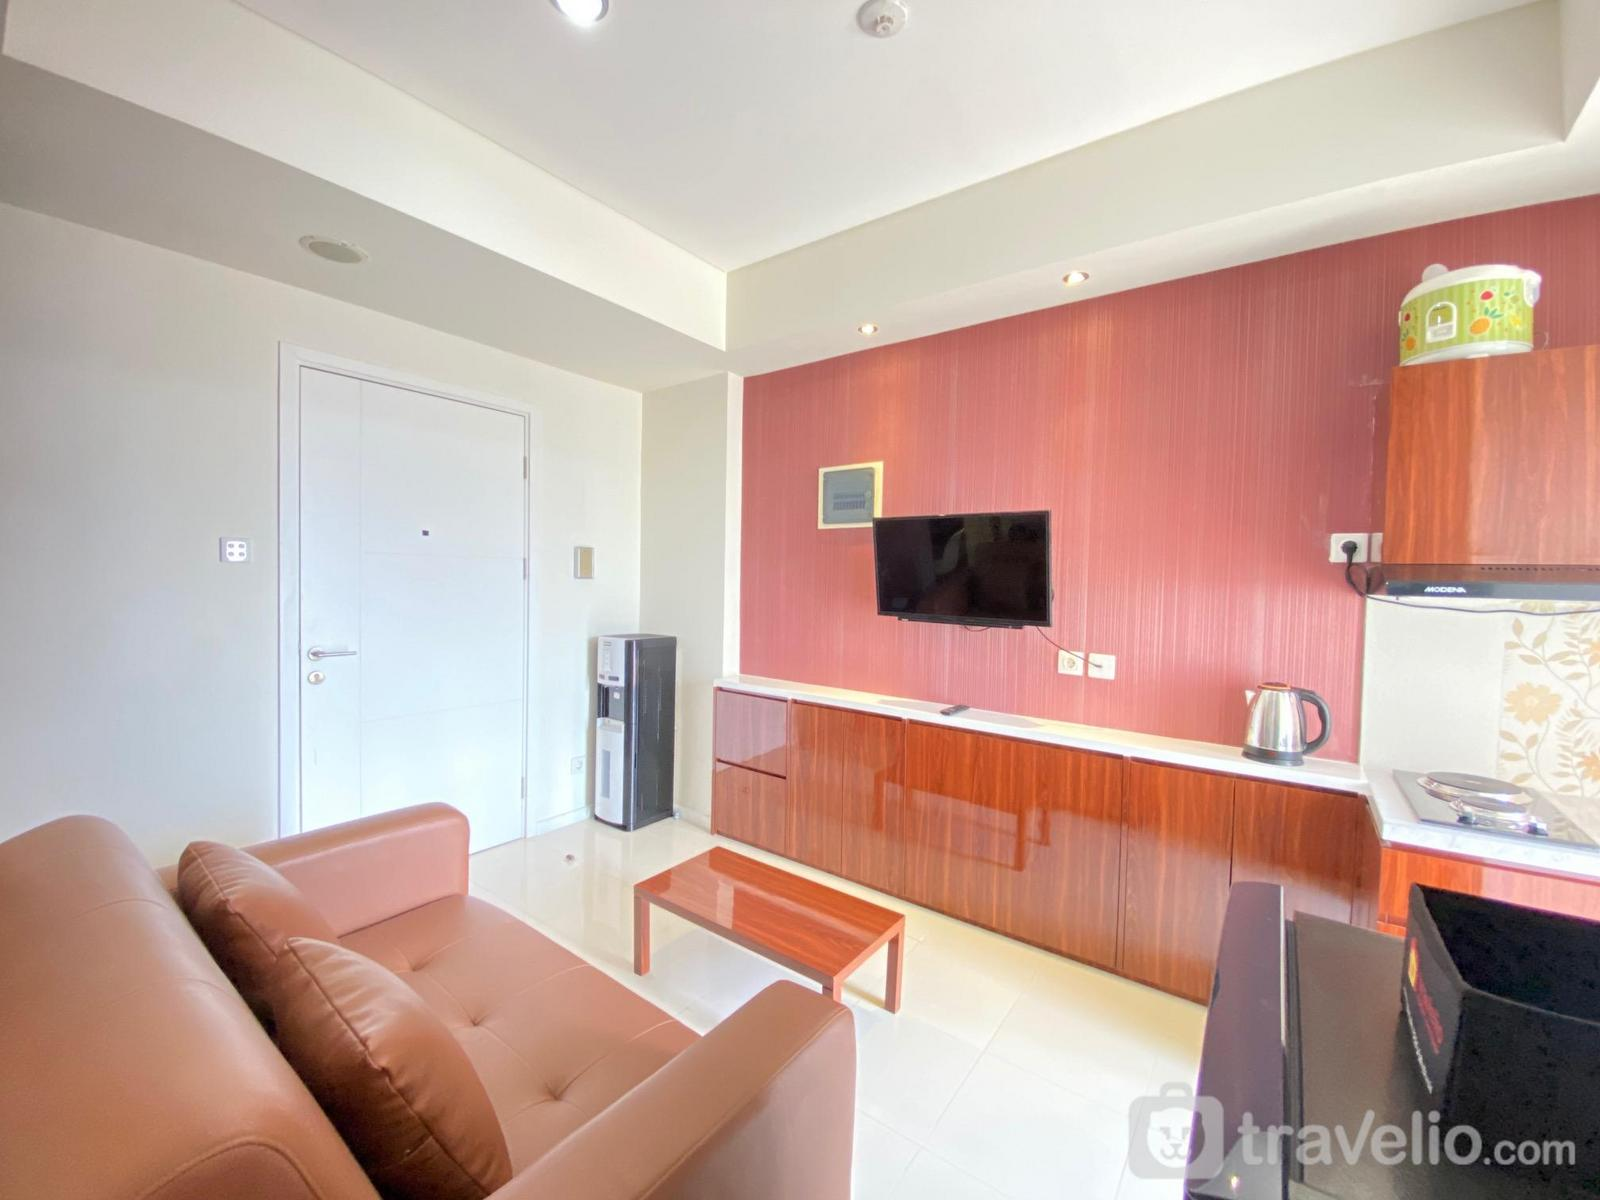 Apartemen Parahyangan Residence - Artistic & Private 2BR Apartment at Parahyangan Residence By Travelio